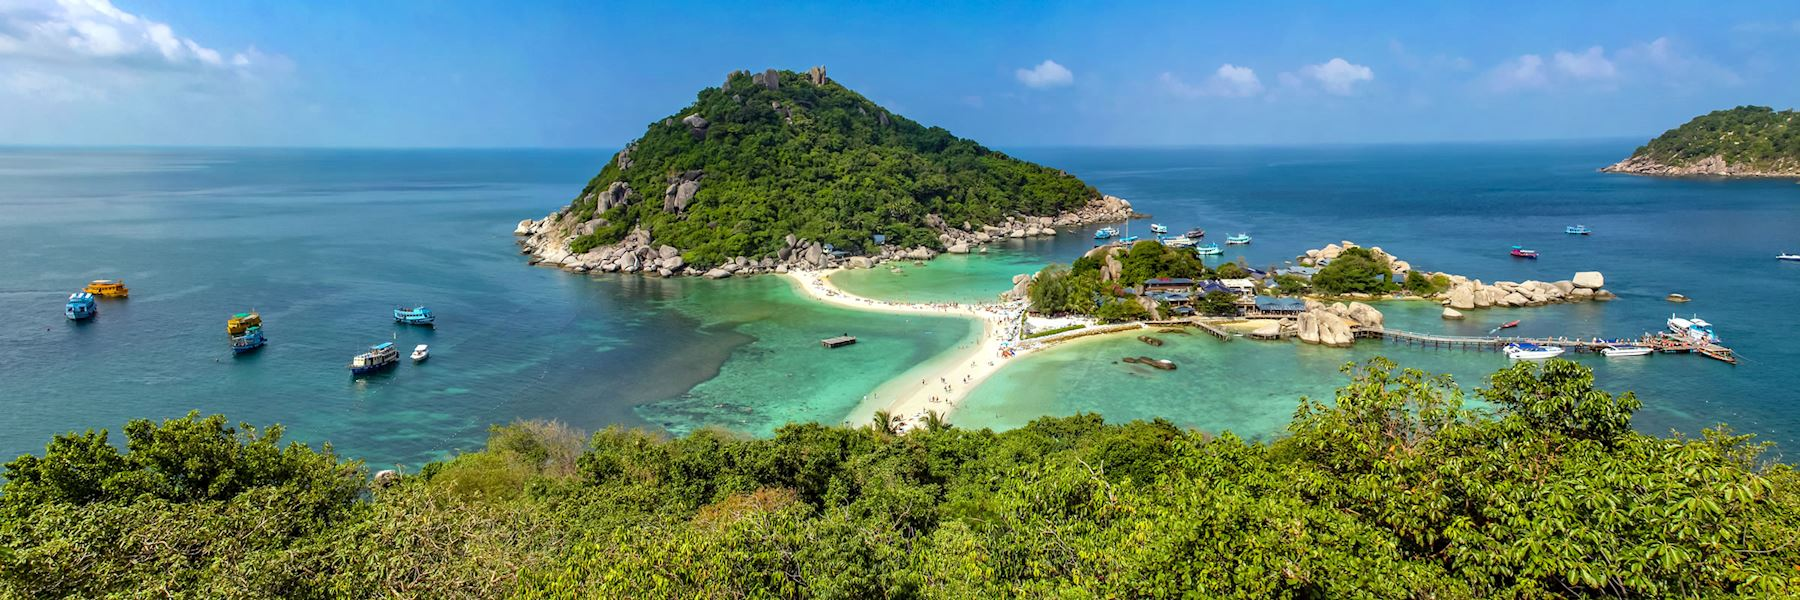 Visit Koh Phangan on a trip to Thailand